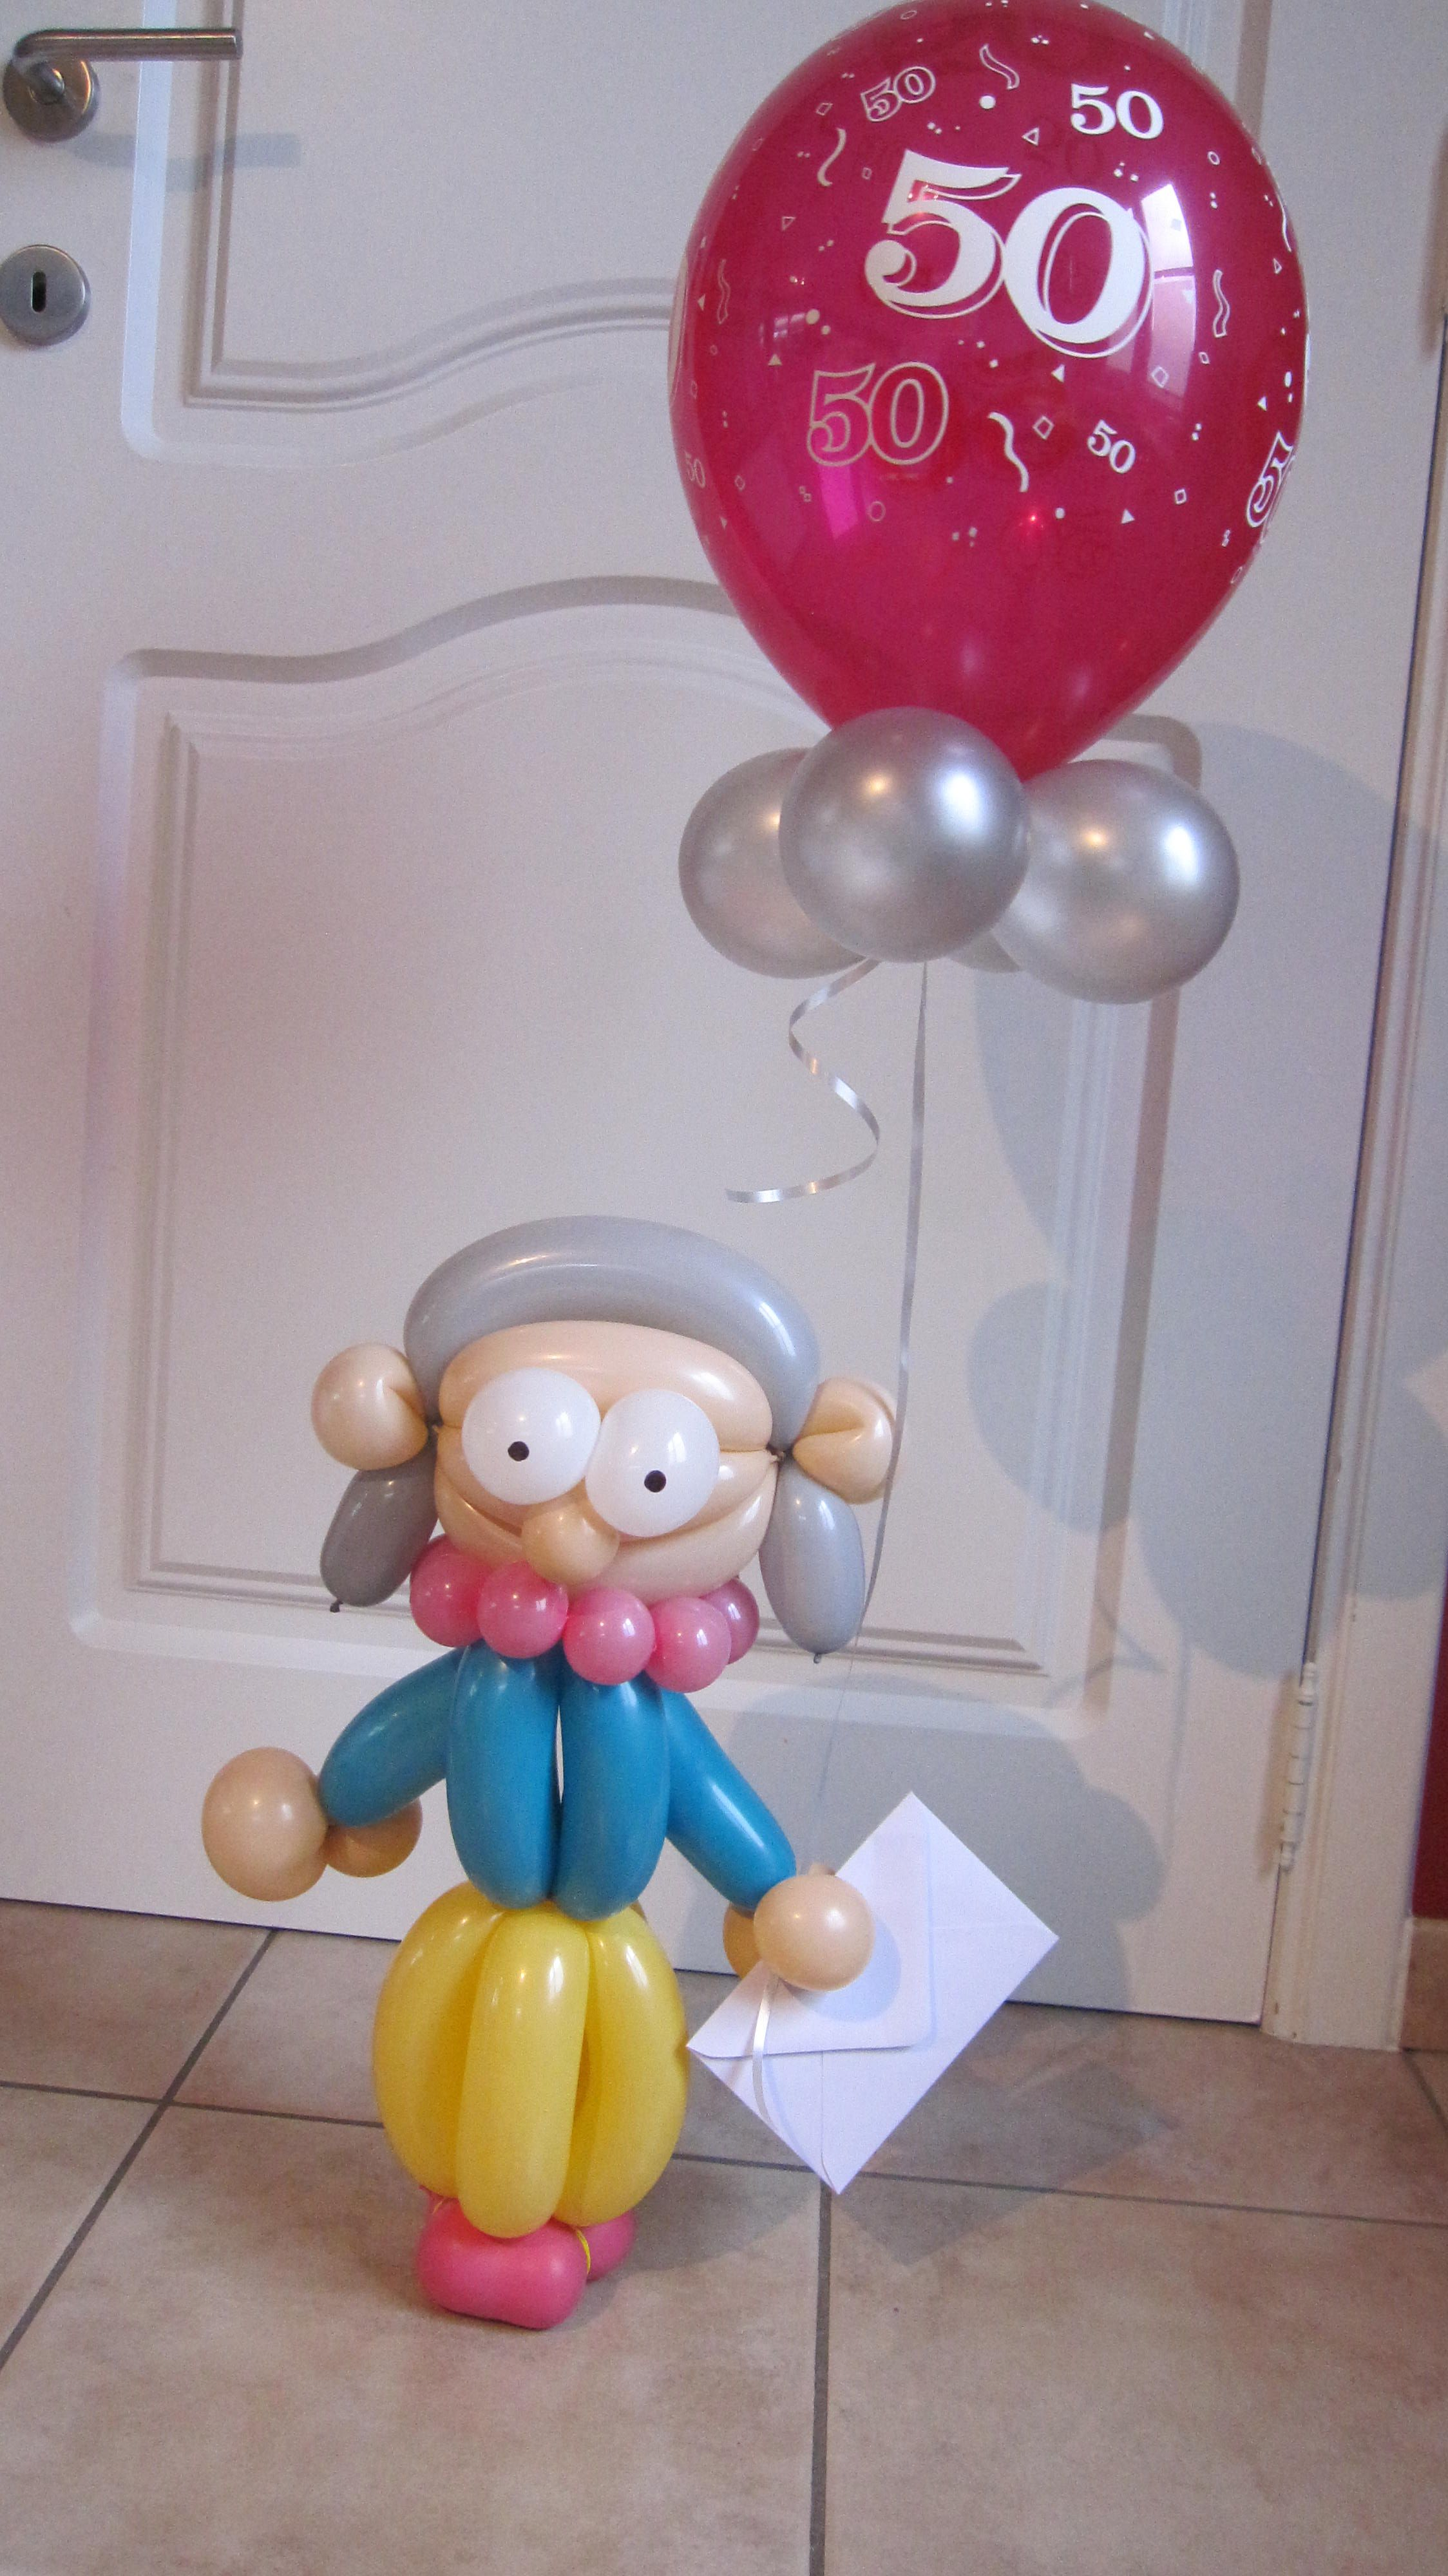 Party Magic In Tucson AZ Partymagicpleasewebs 928 310 3670 Balloons Parties Birthday